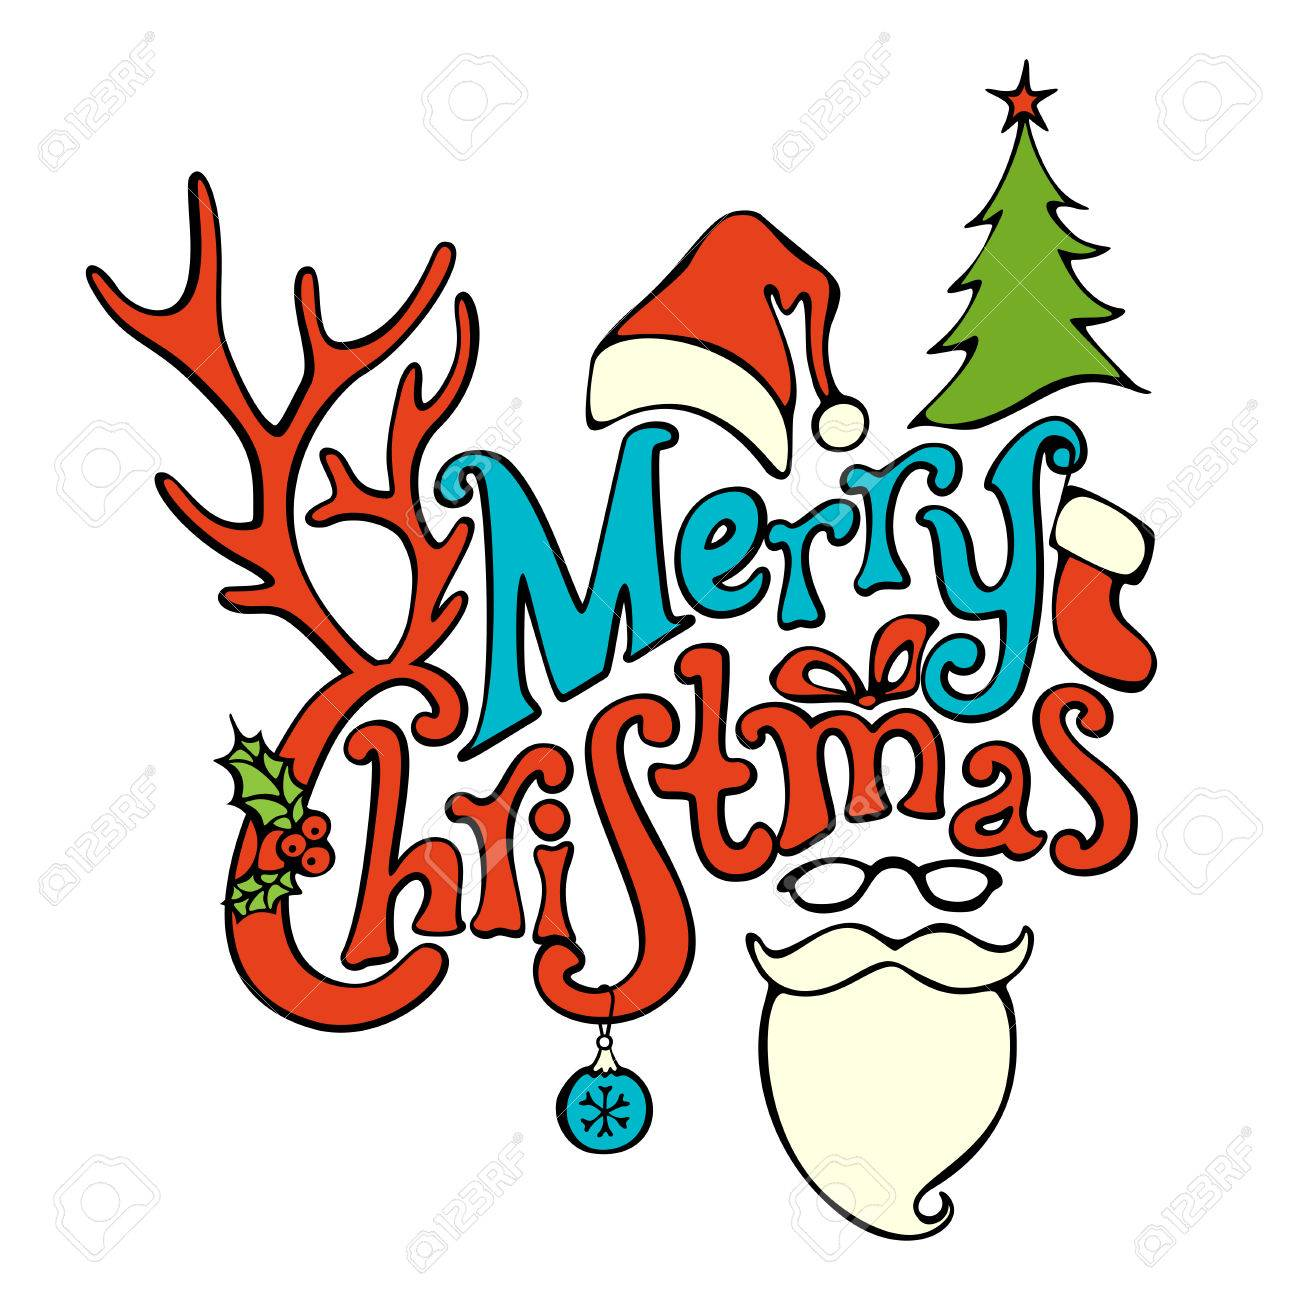 Merry Christmas Lettering.Merry Christmas Lettering Hand Written Text Holly Berry Fir